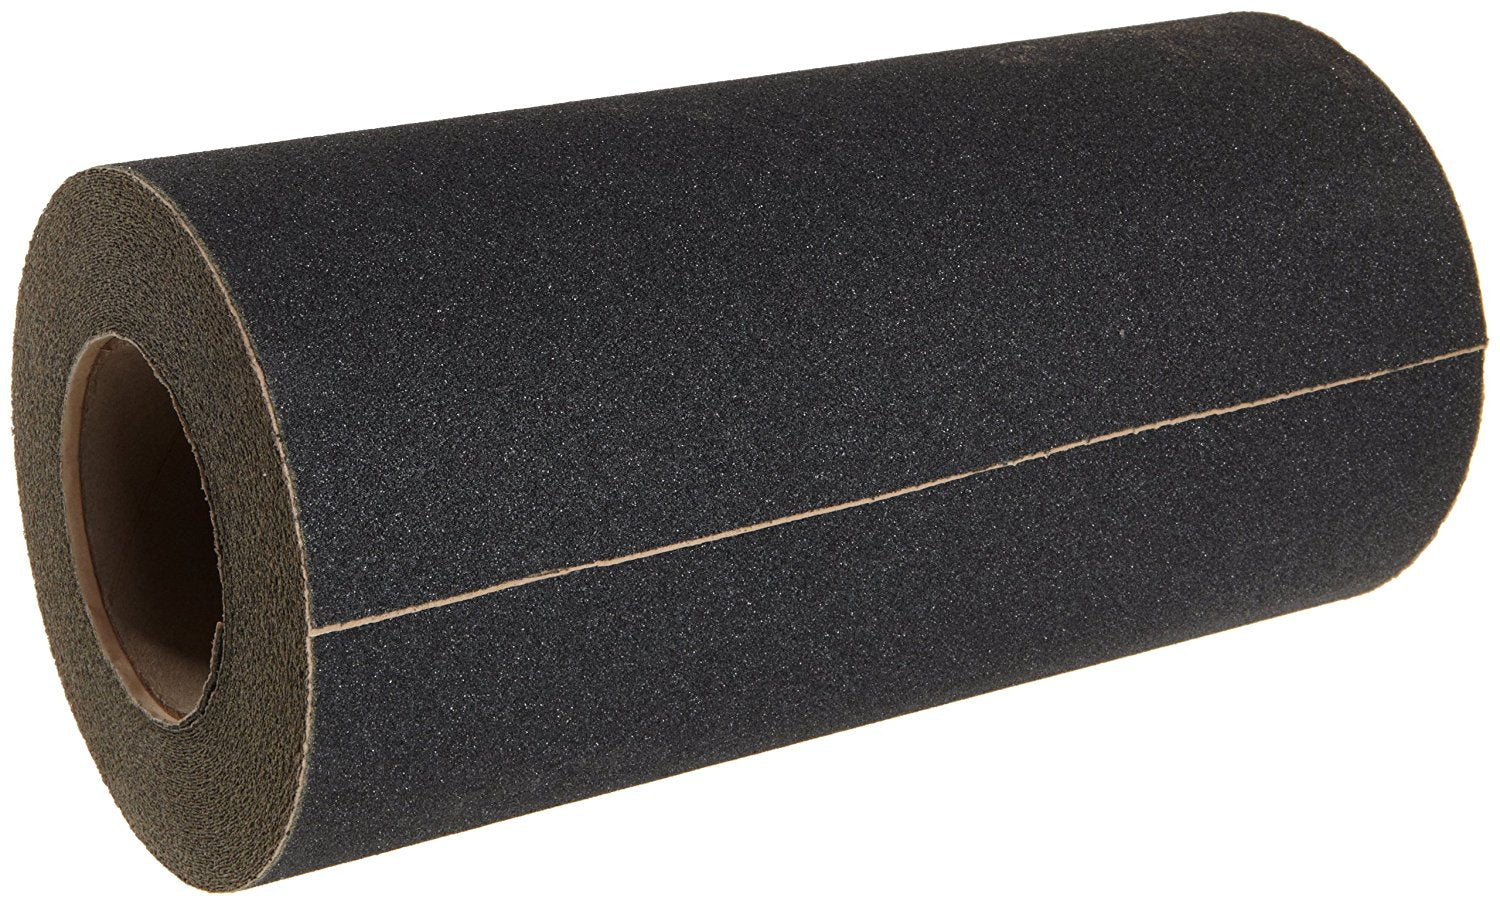 "12"" X 60' Roll BLACK Abrasive Tape - Limited Stock"